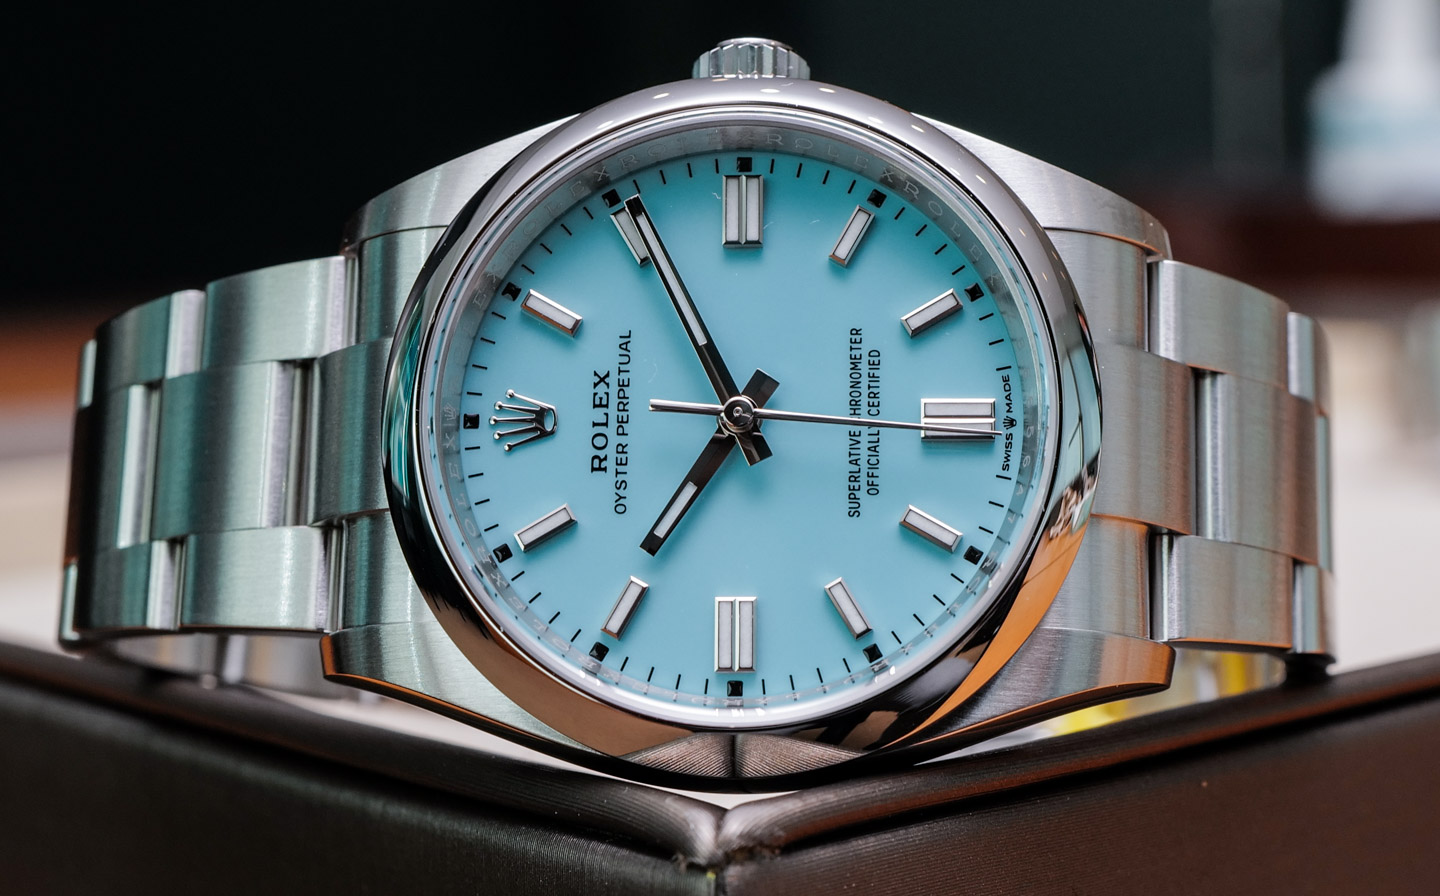 Rolex Oyster Perpetual 124300 fake watch is with high cost performance.